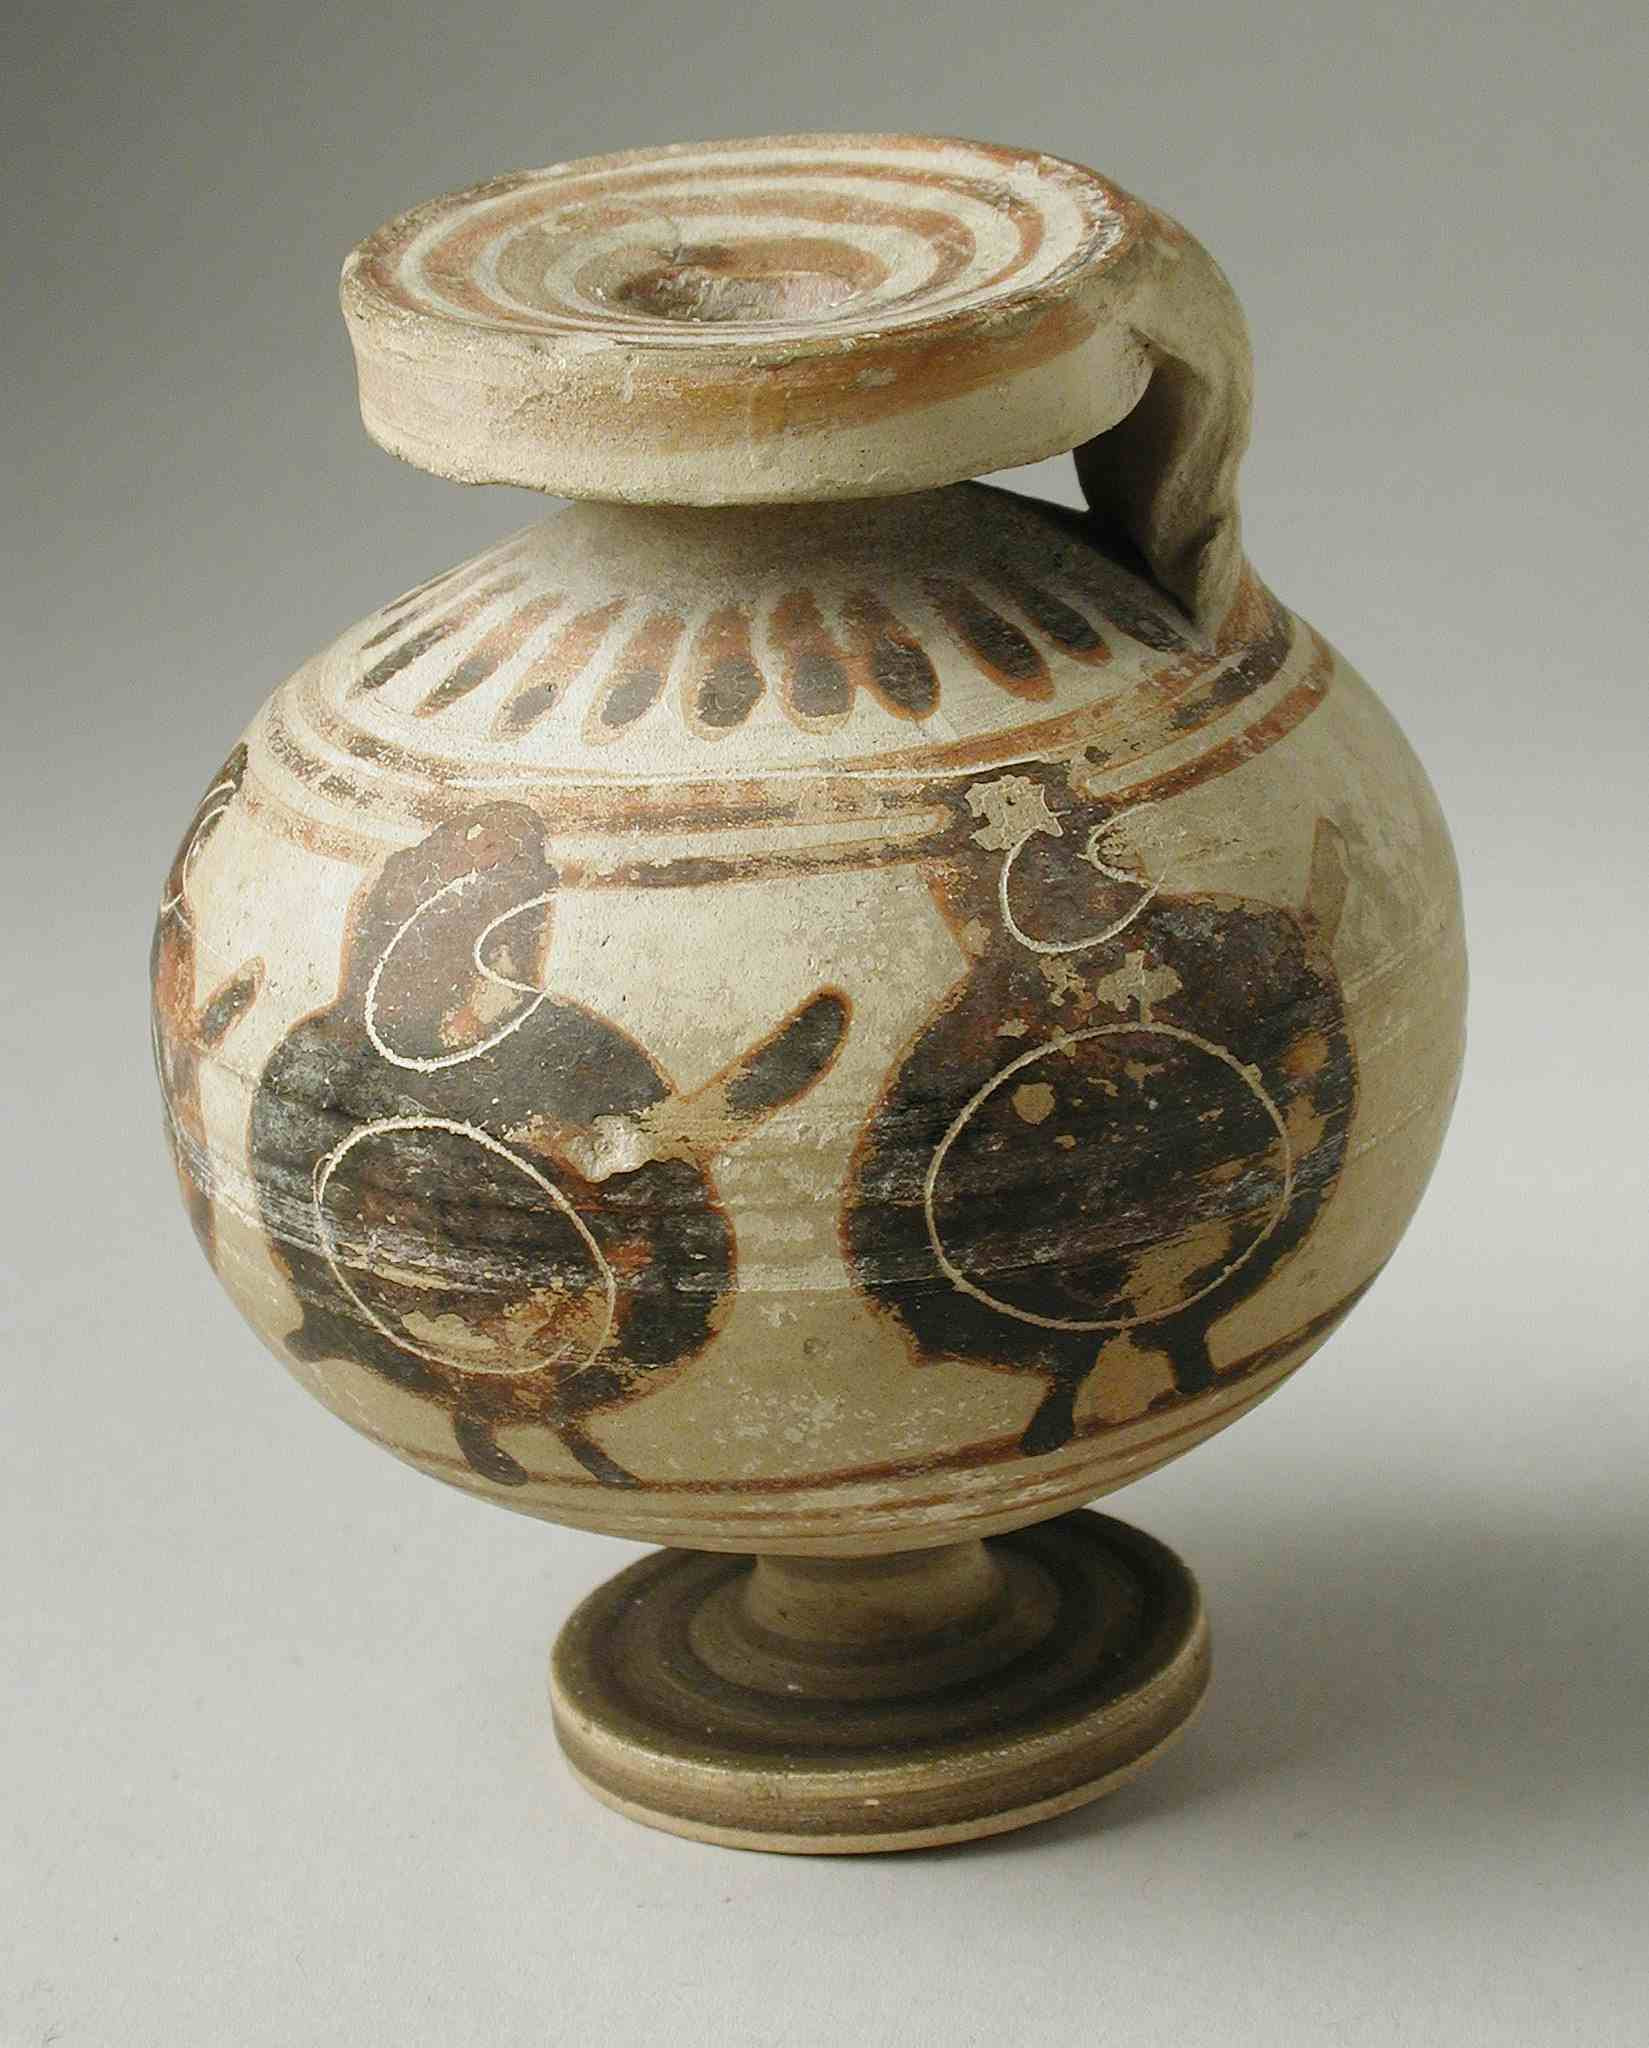 3 Feet Tall Vases Of Periods Of Ancient Greek Pottery Types Of Vases In 16395392172 E853f2d11b K 589fa7123df78c4758a422ff